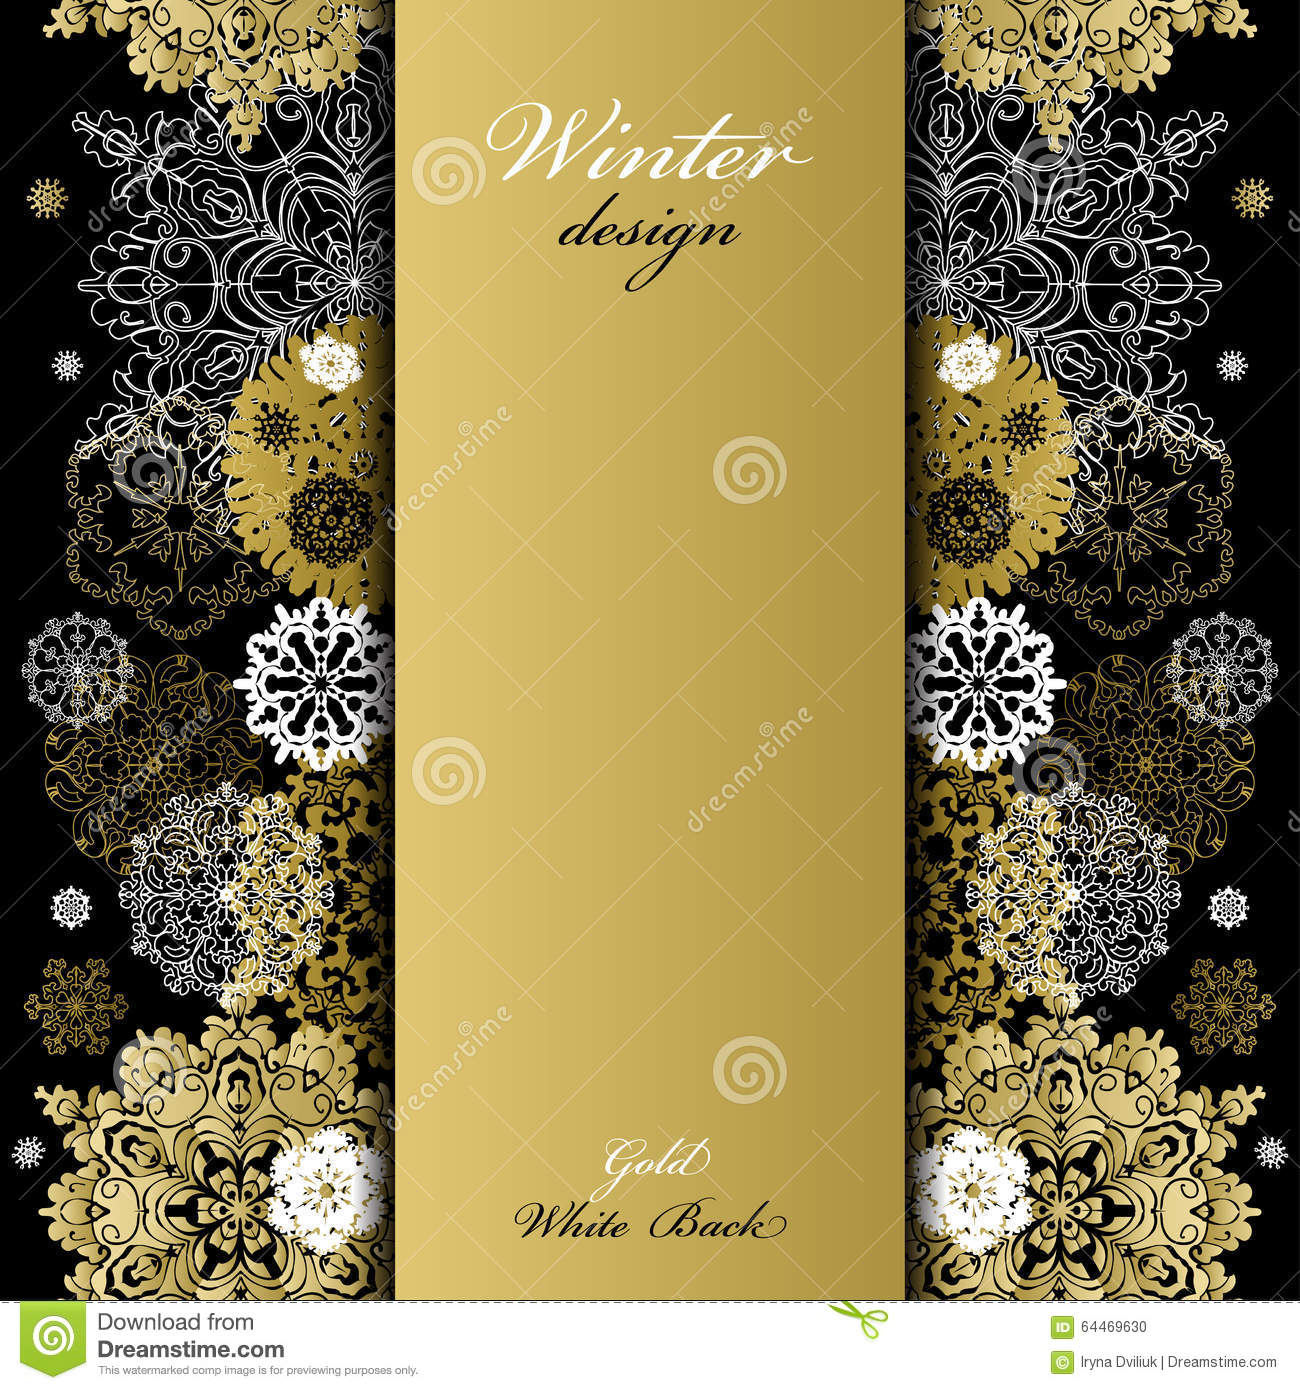 winter design with golden white snowflakes on black background  stock vector